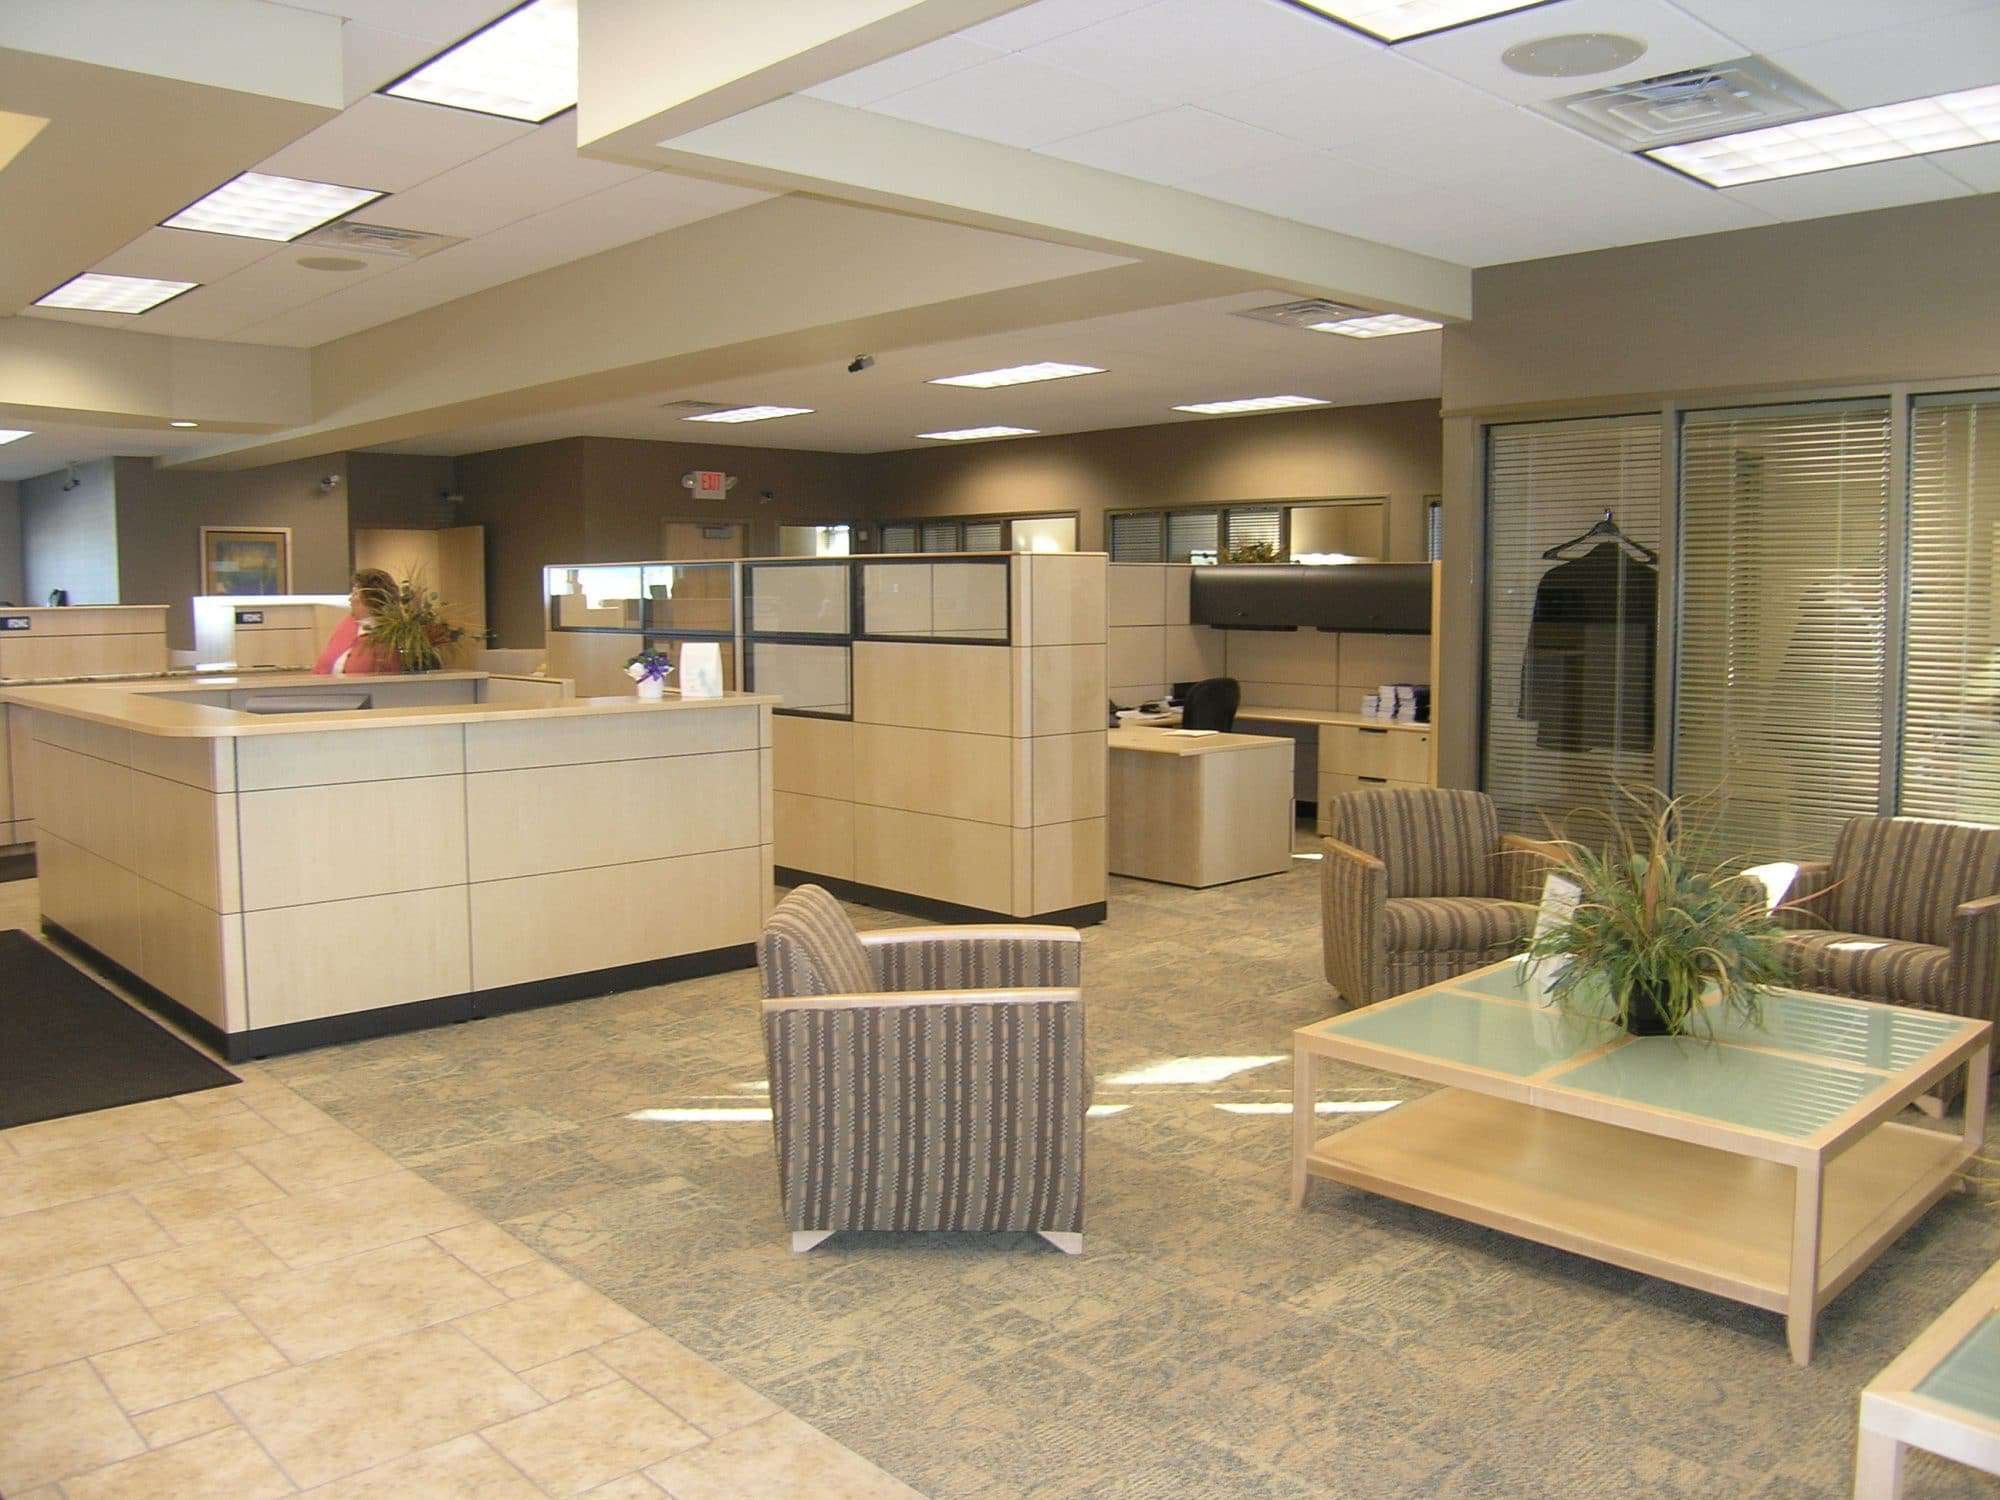 Making A Good First Impression Commercial Interior Design Is The Key Systems Furniture